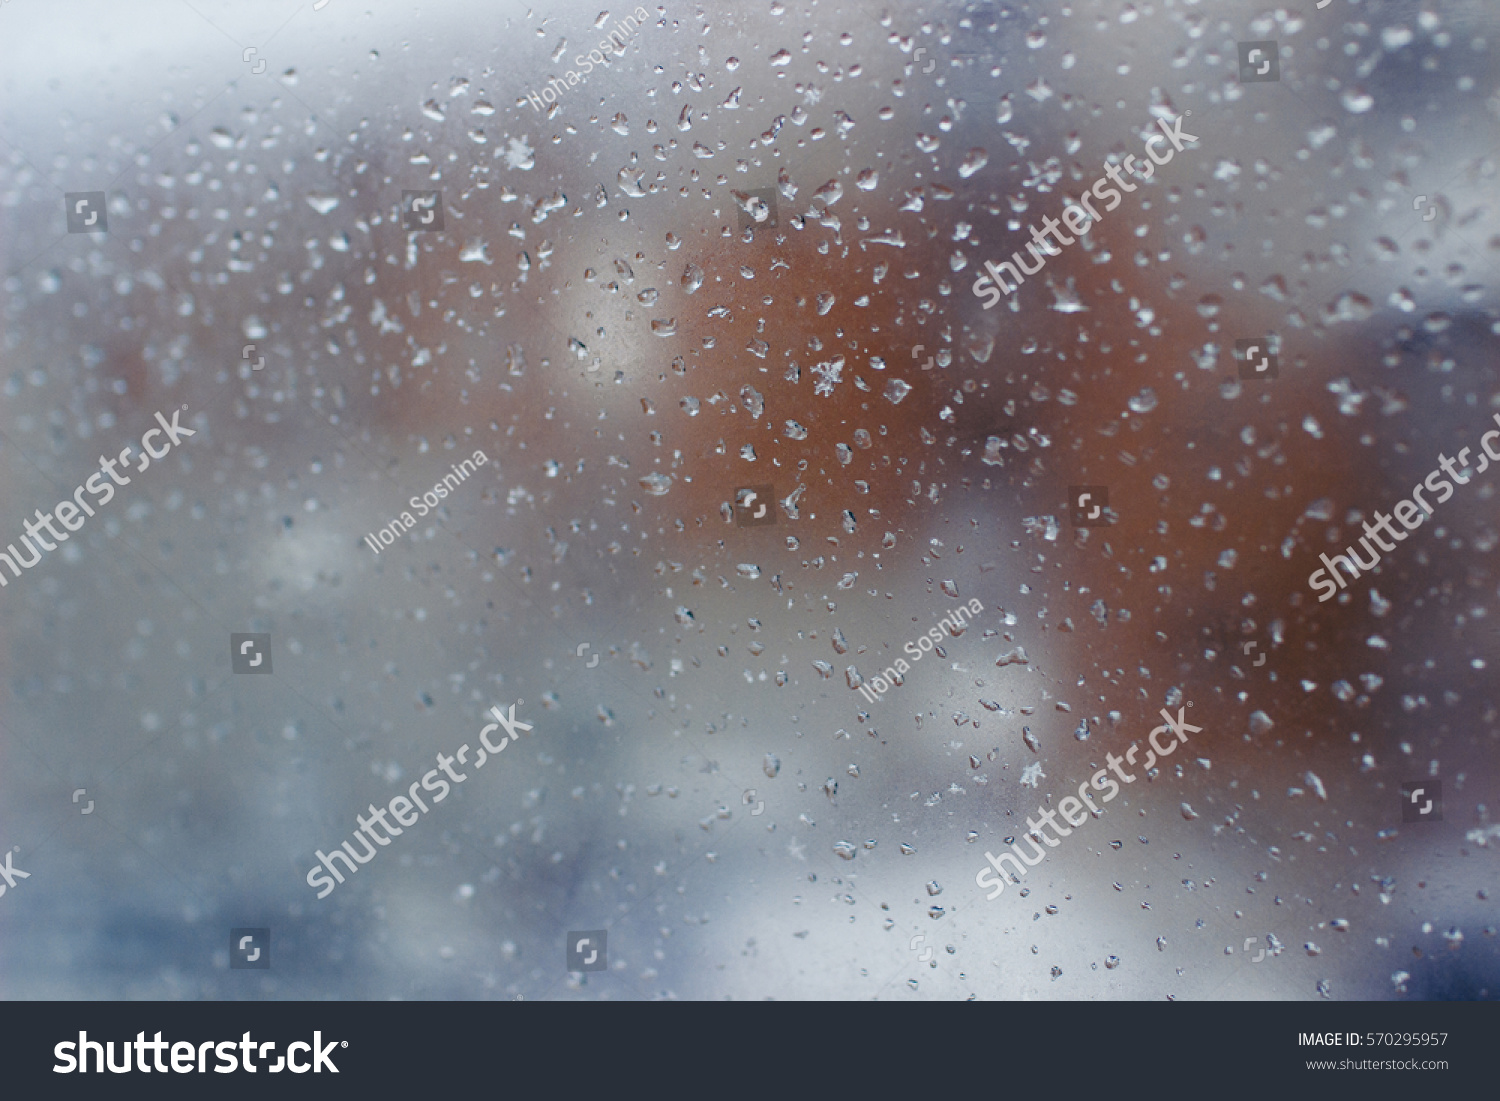 city landscape is hardly distinguishable through a muddy window with rain drops, orange structure #570295957